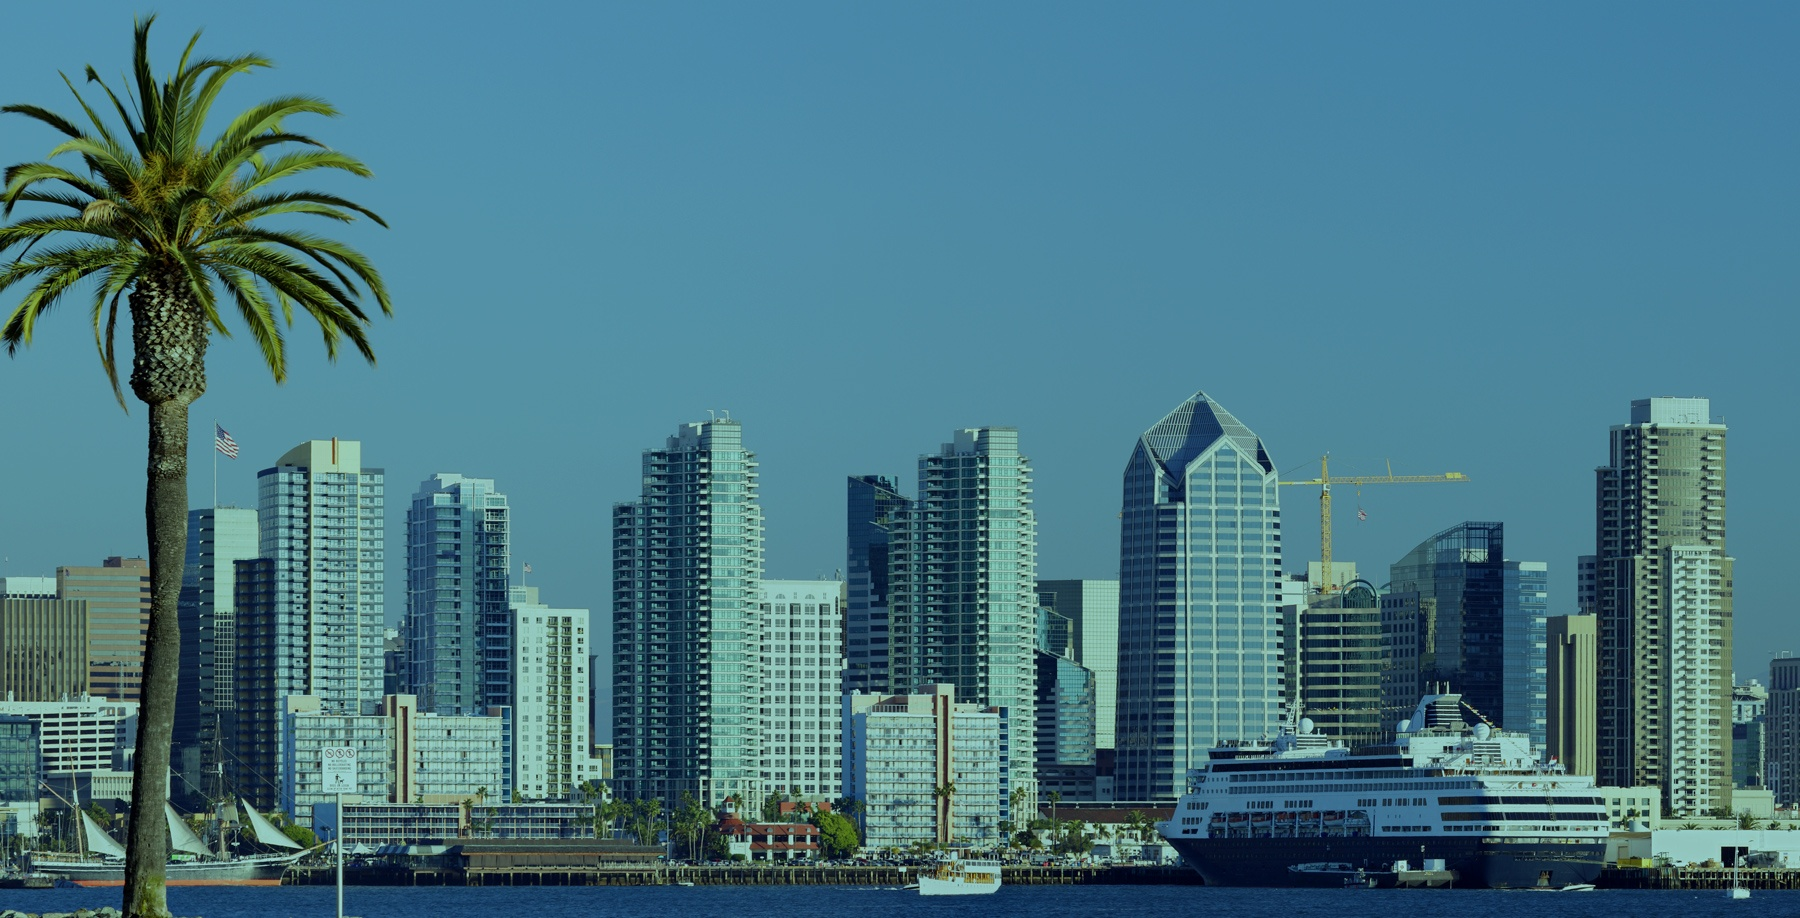 sd_skyline-photo.jpg